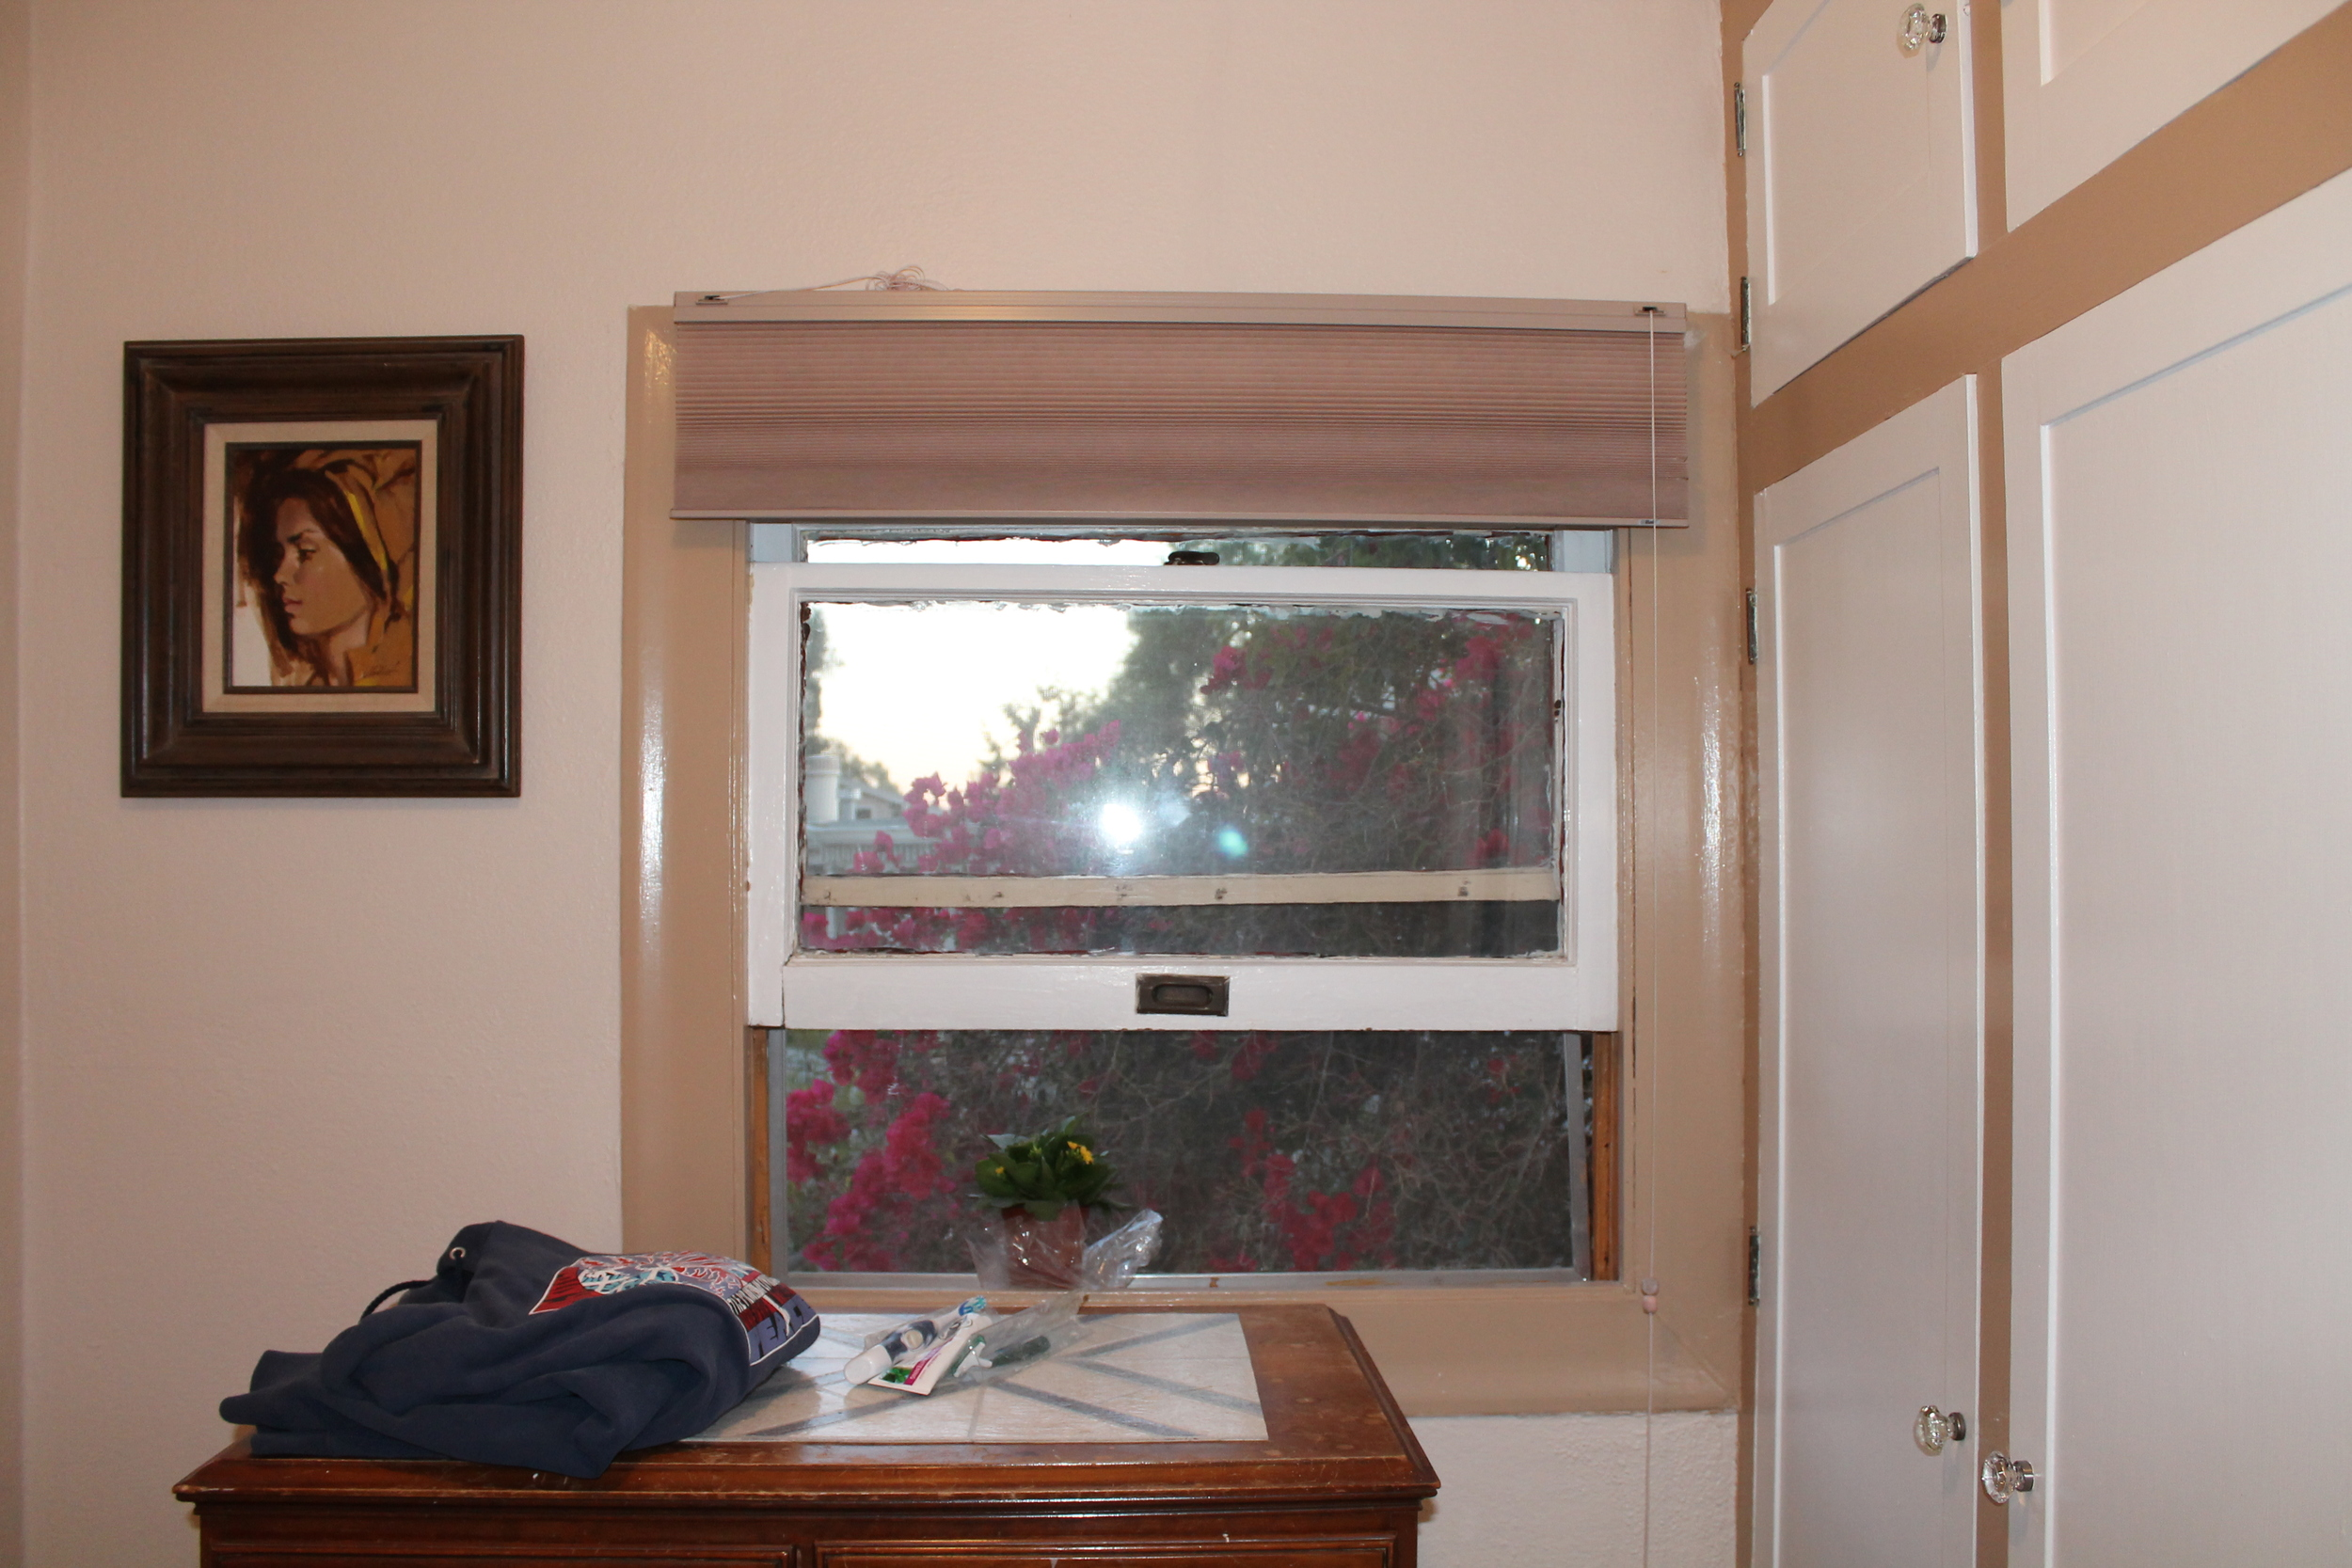 Before: Built in closet which was removed and the space was given to the other bath for a large shower.